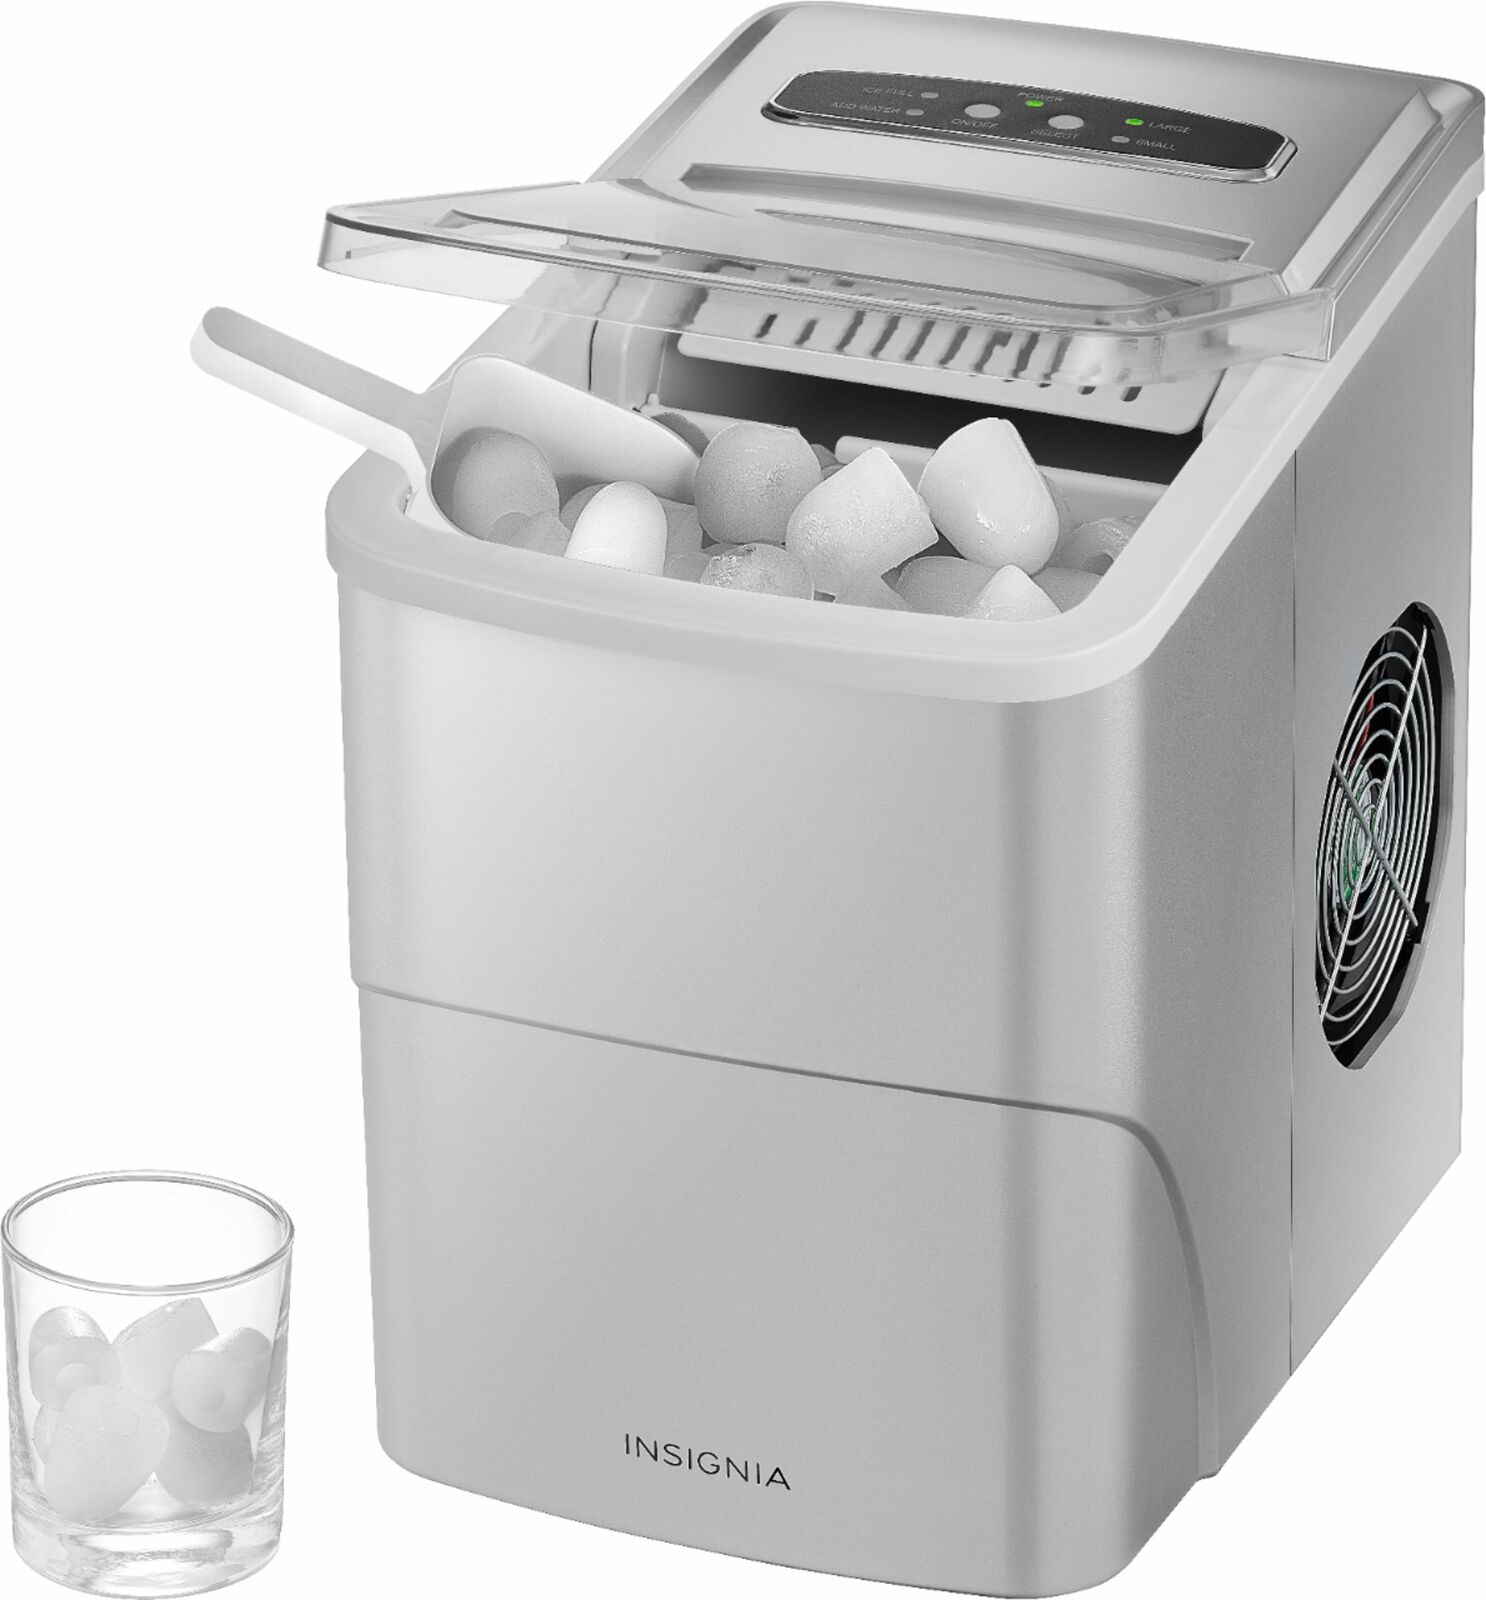 Igloo Ice105 Portable Ice Maker Silver For Sale Online Ebay